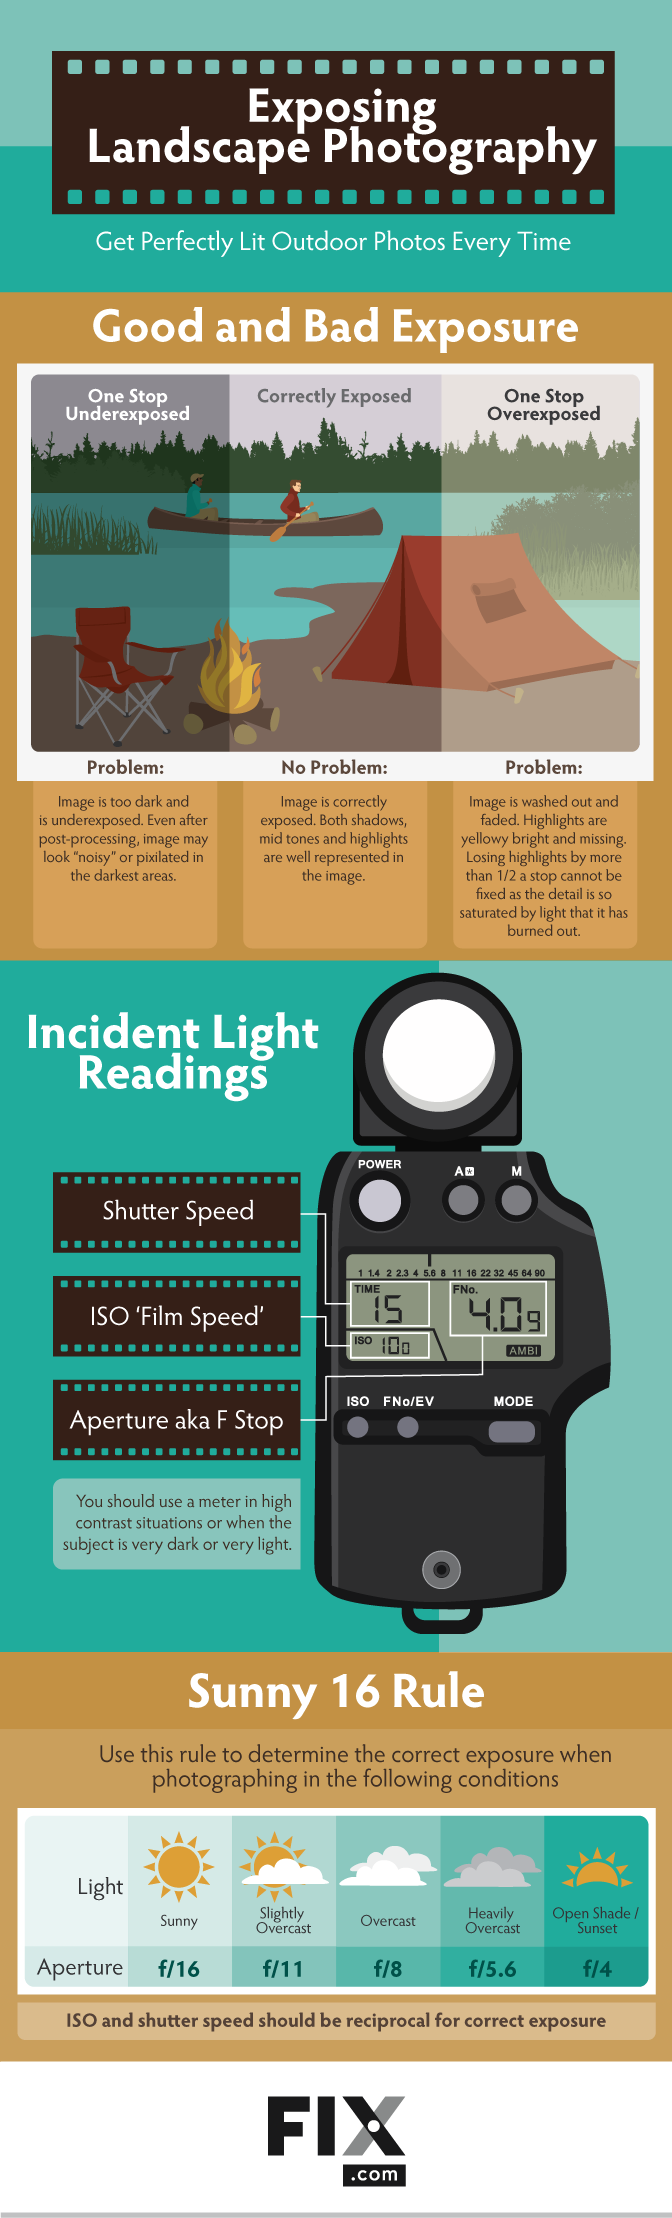 Exposing Landscape Photography Get Perfectly Lit Outdoor Photos Every Time #infographic